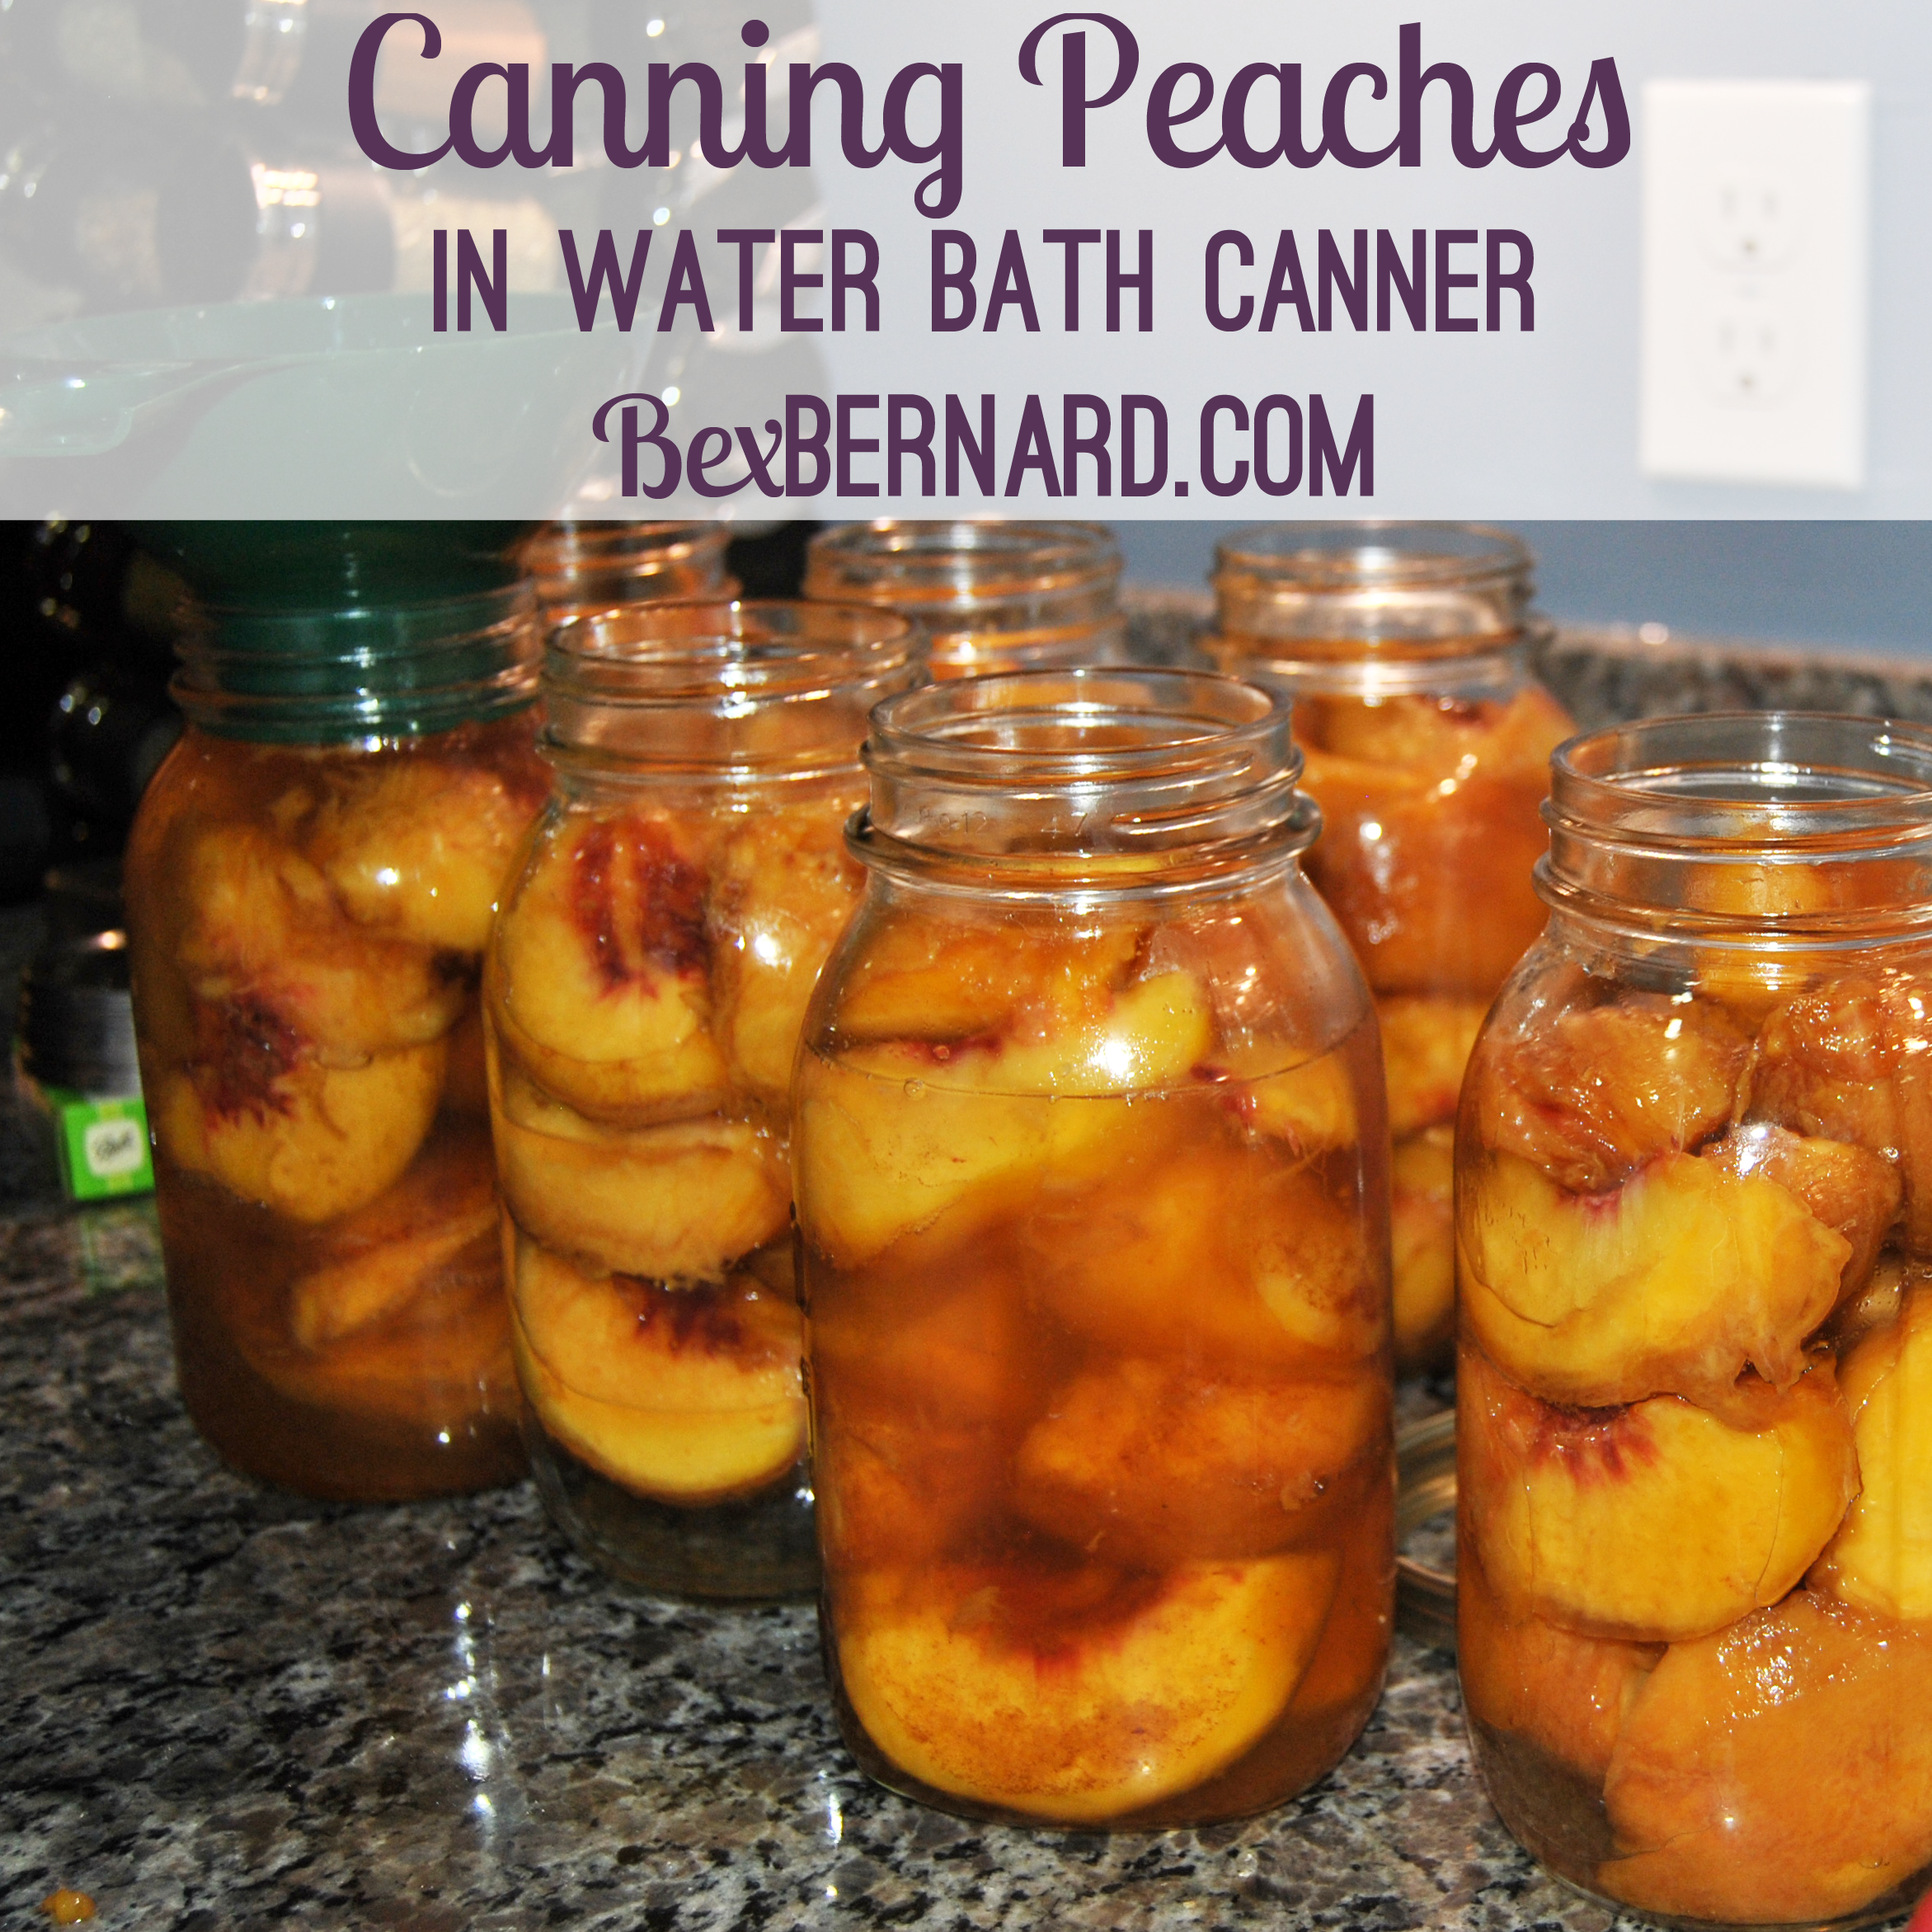 how to can fresh peaches in a water bath canner with mason jars. canning, food preservation | bexbernard.com